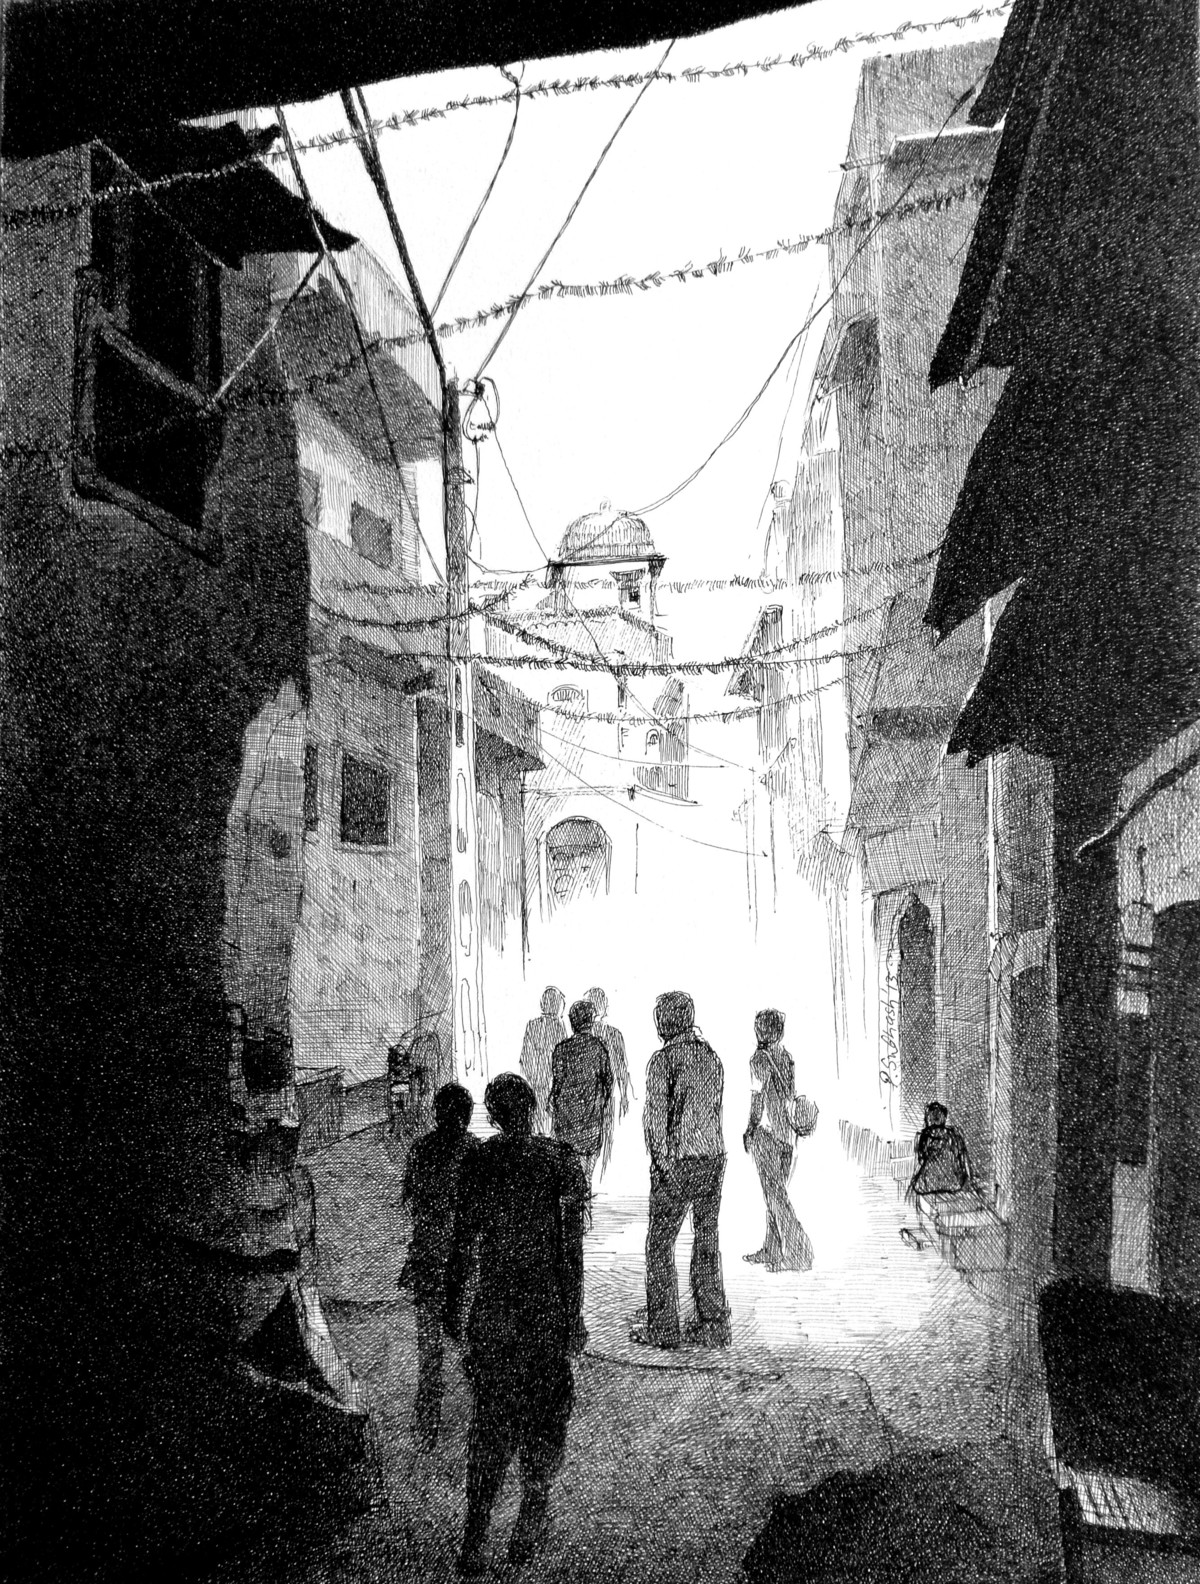 Dakor Street by Subhash Parmar, Illustration Drawing, Ink on Paper, Gray color